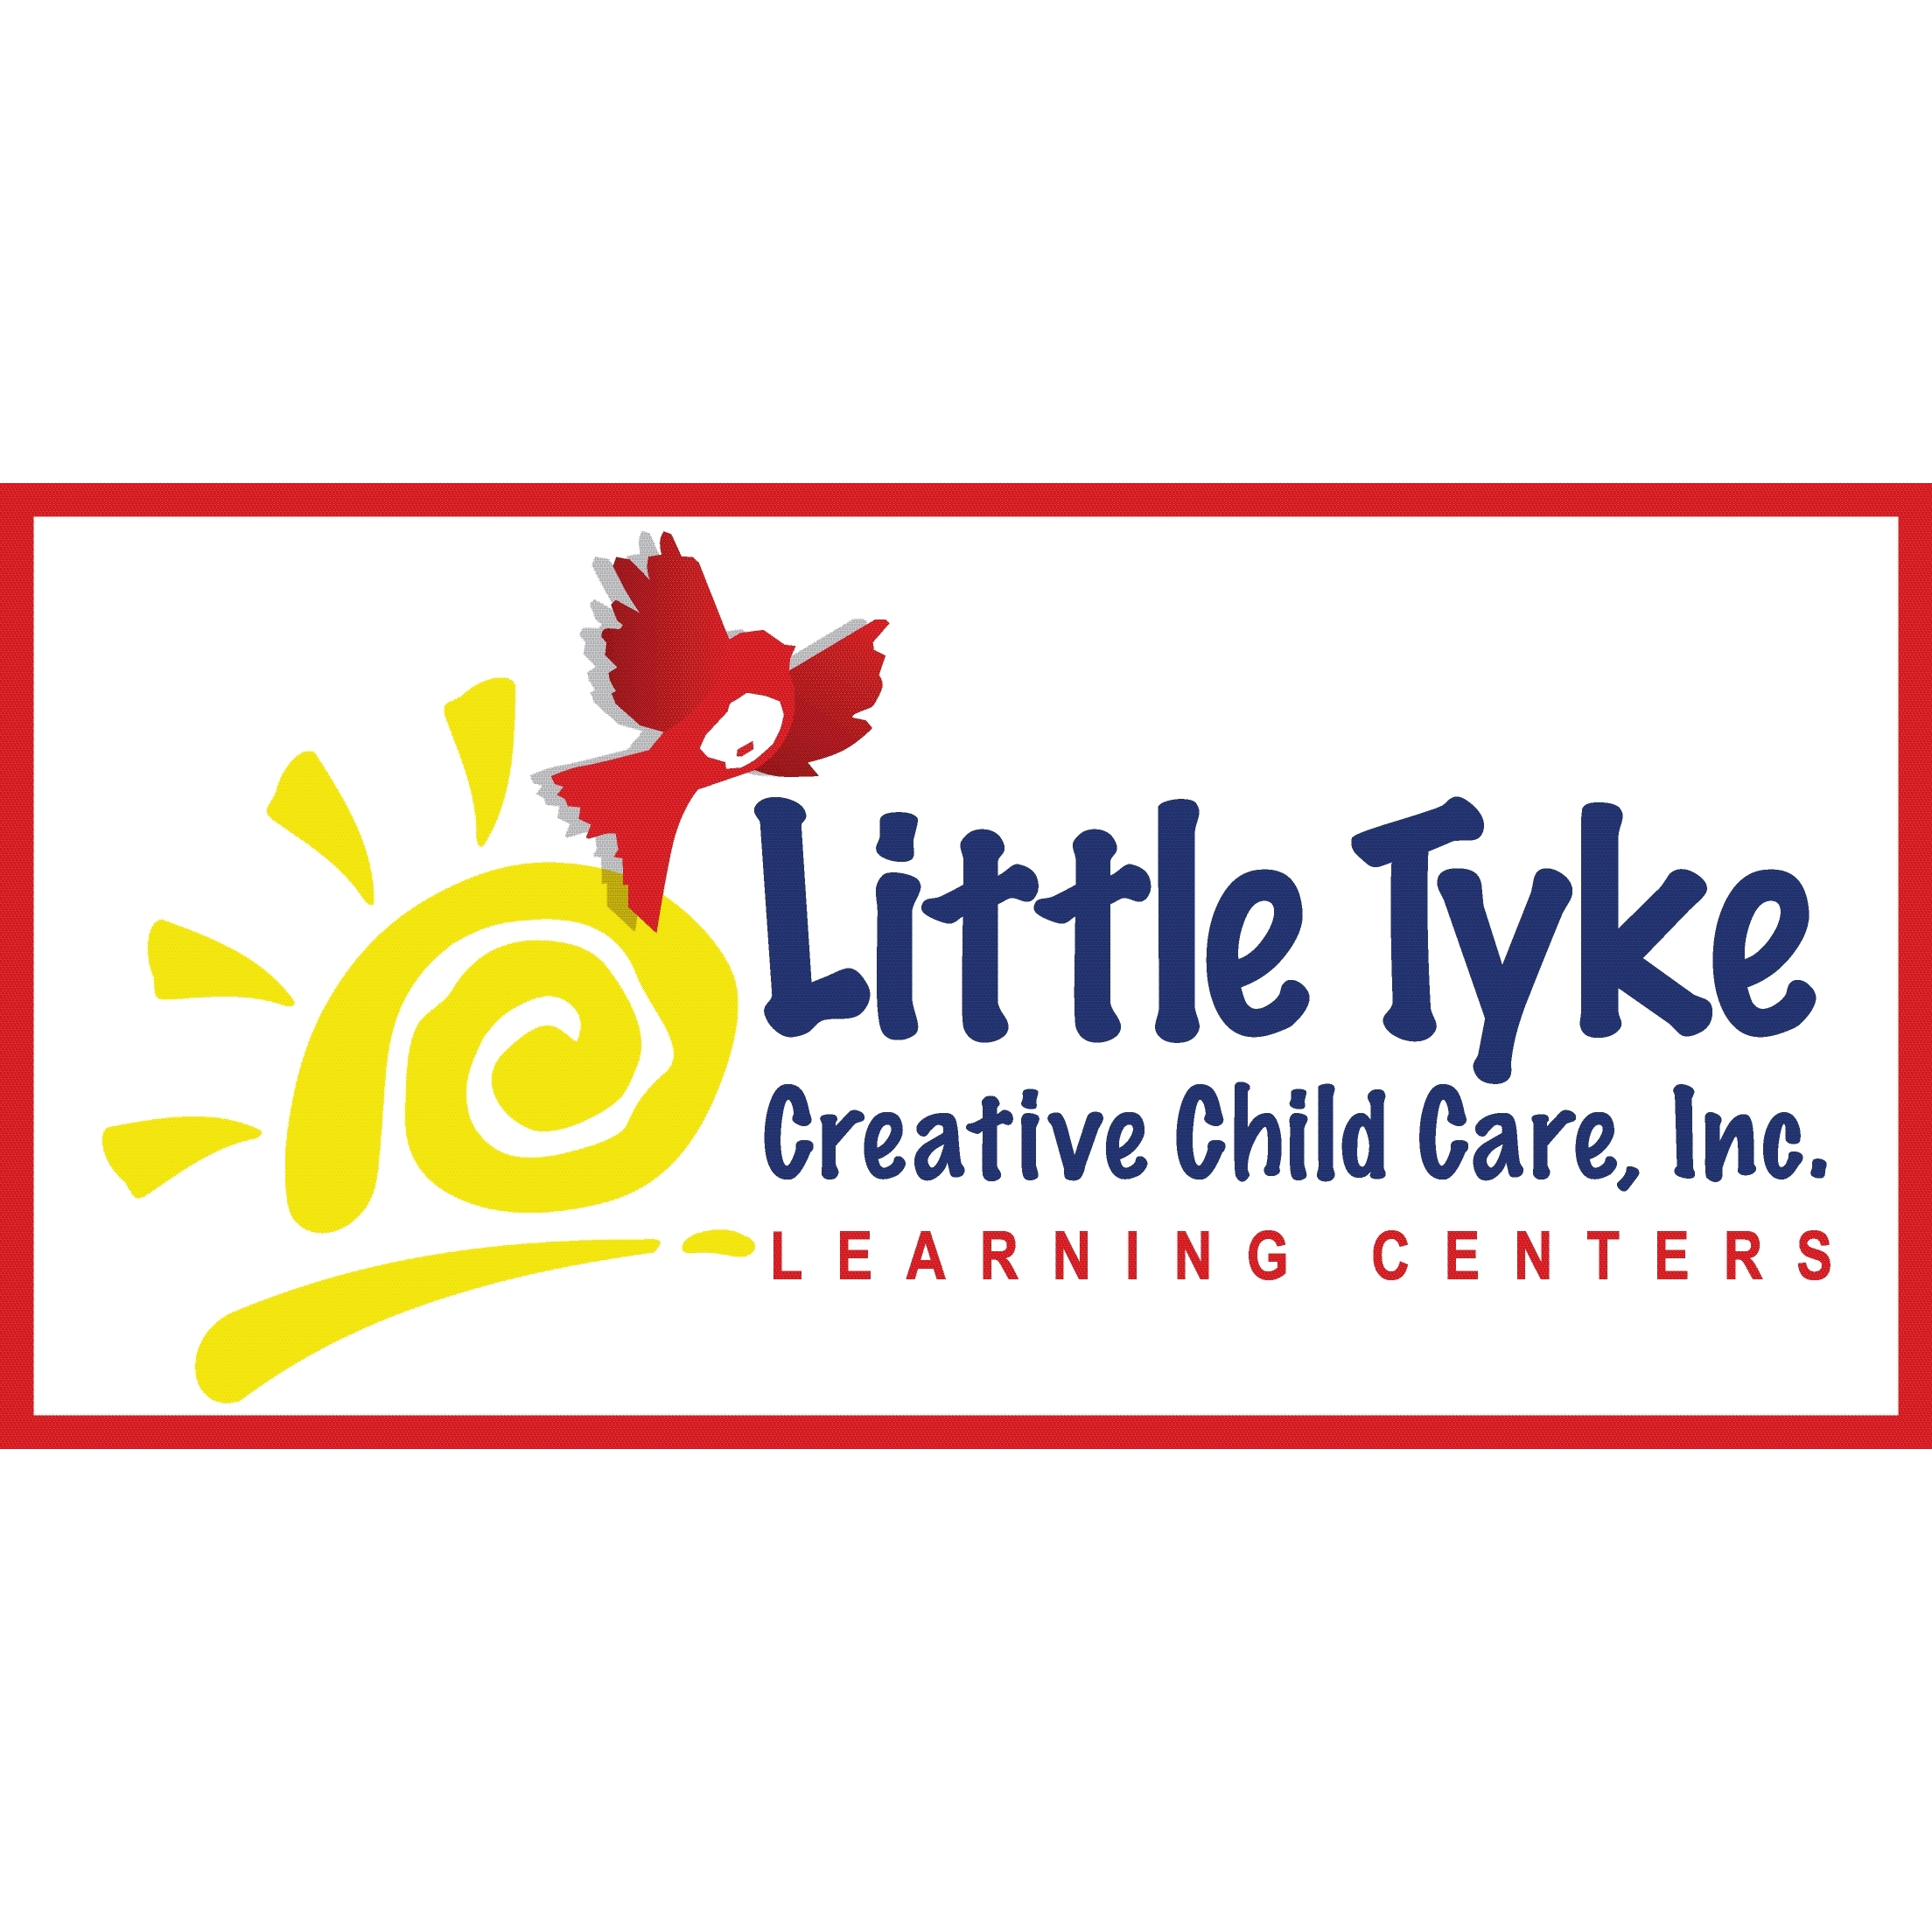 Little Tyke Learning Centers